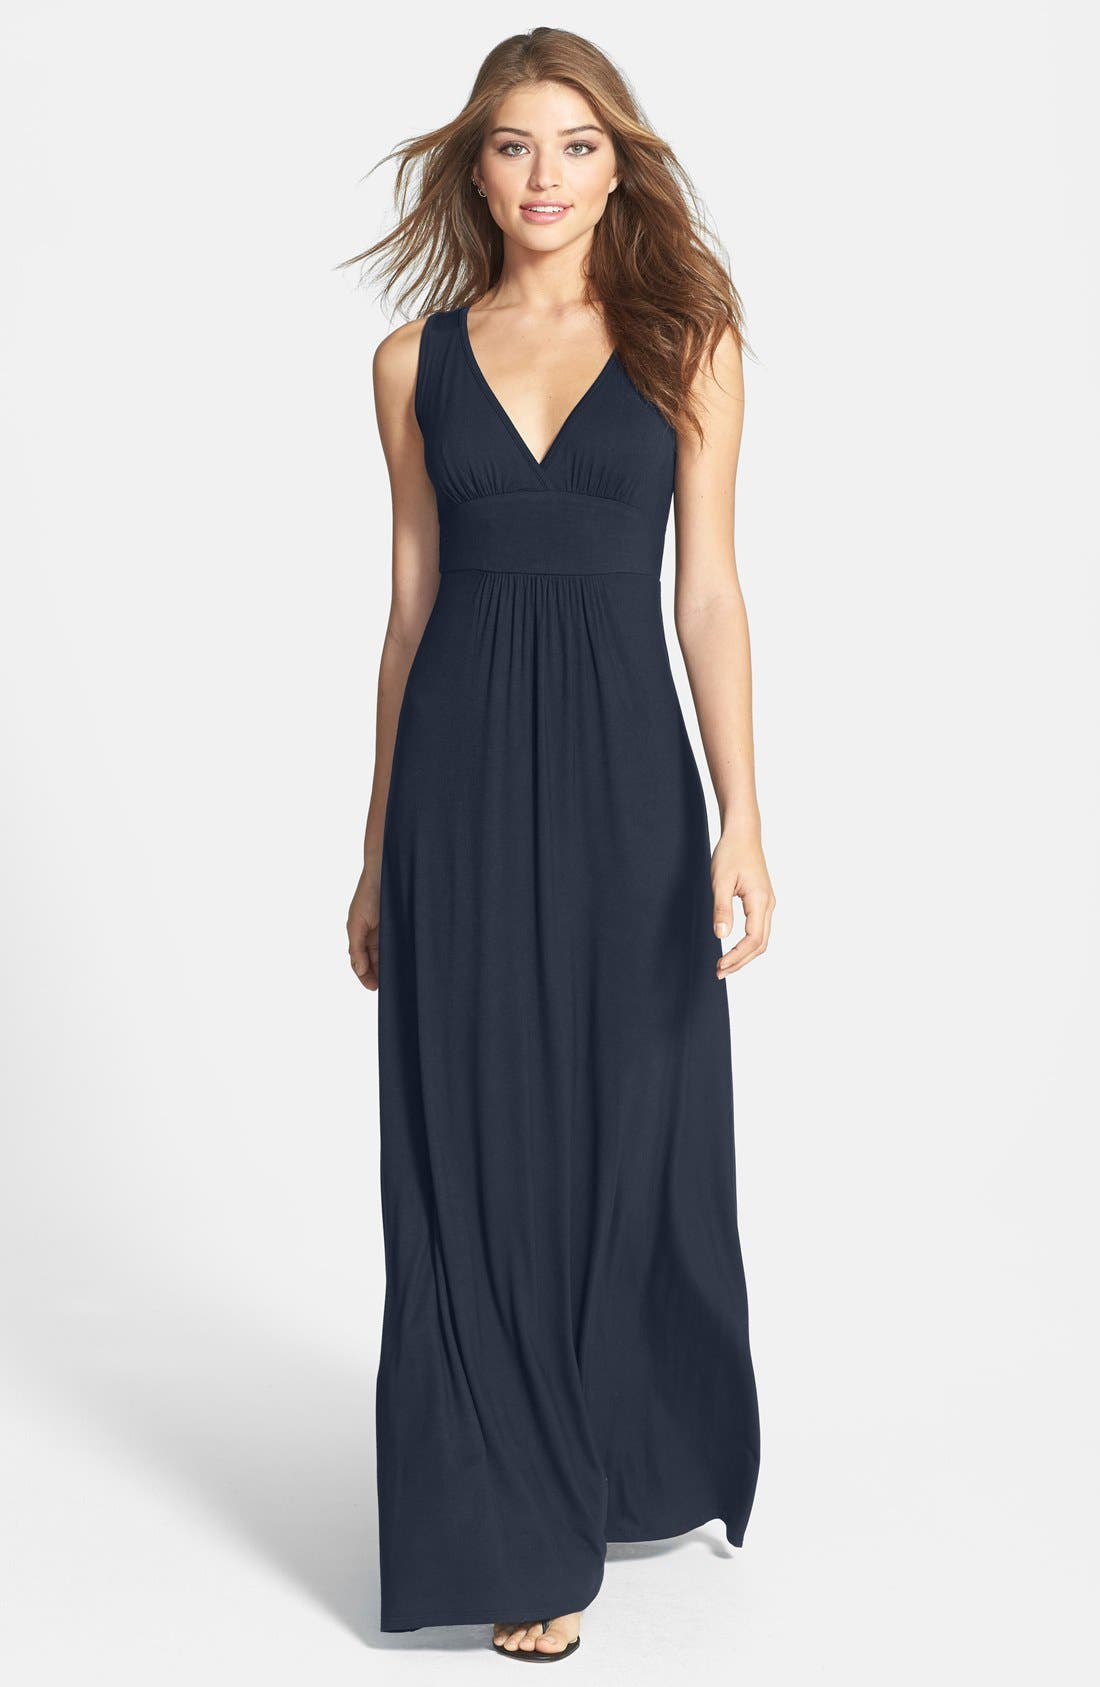 Women's Long Casual Dresses | Nordstrom